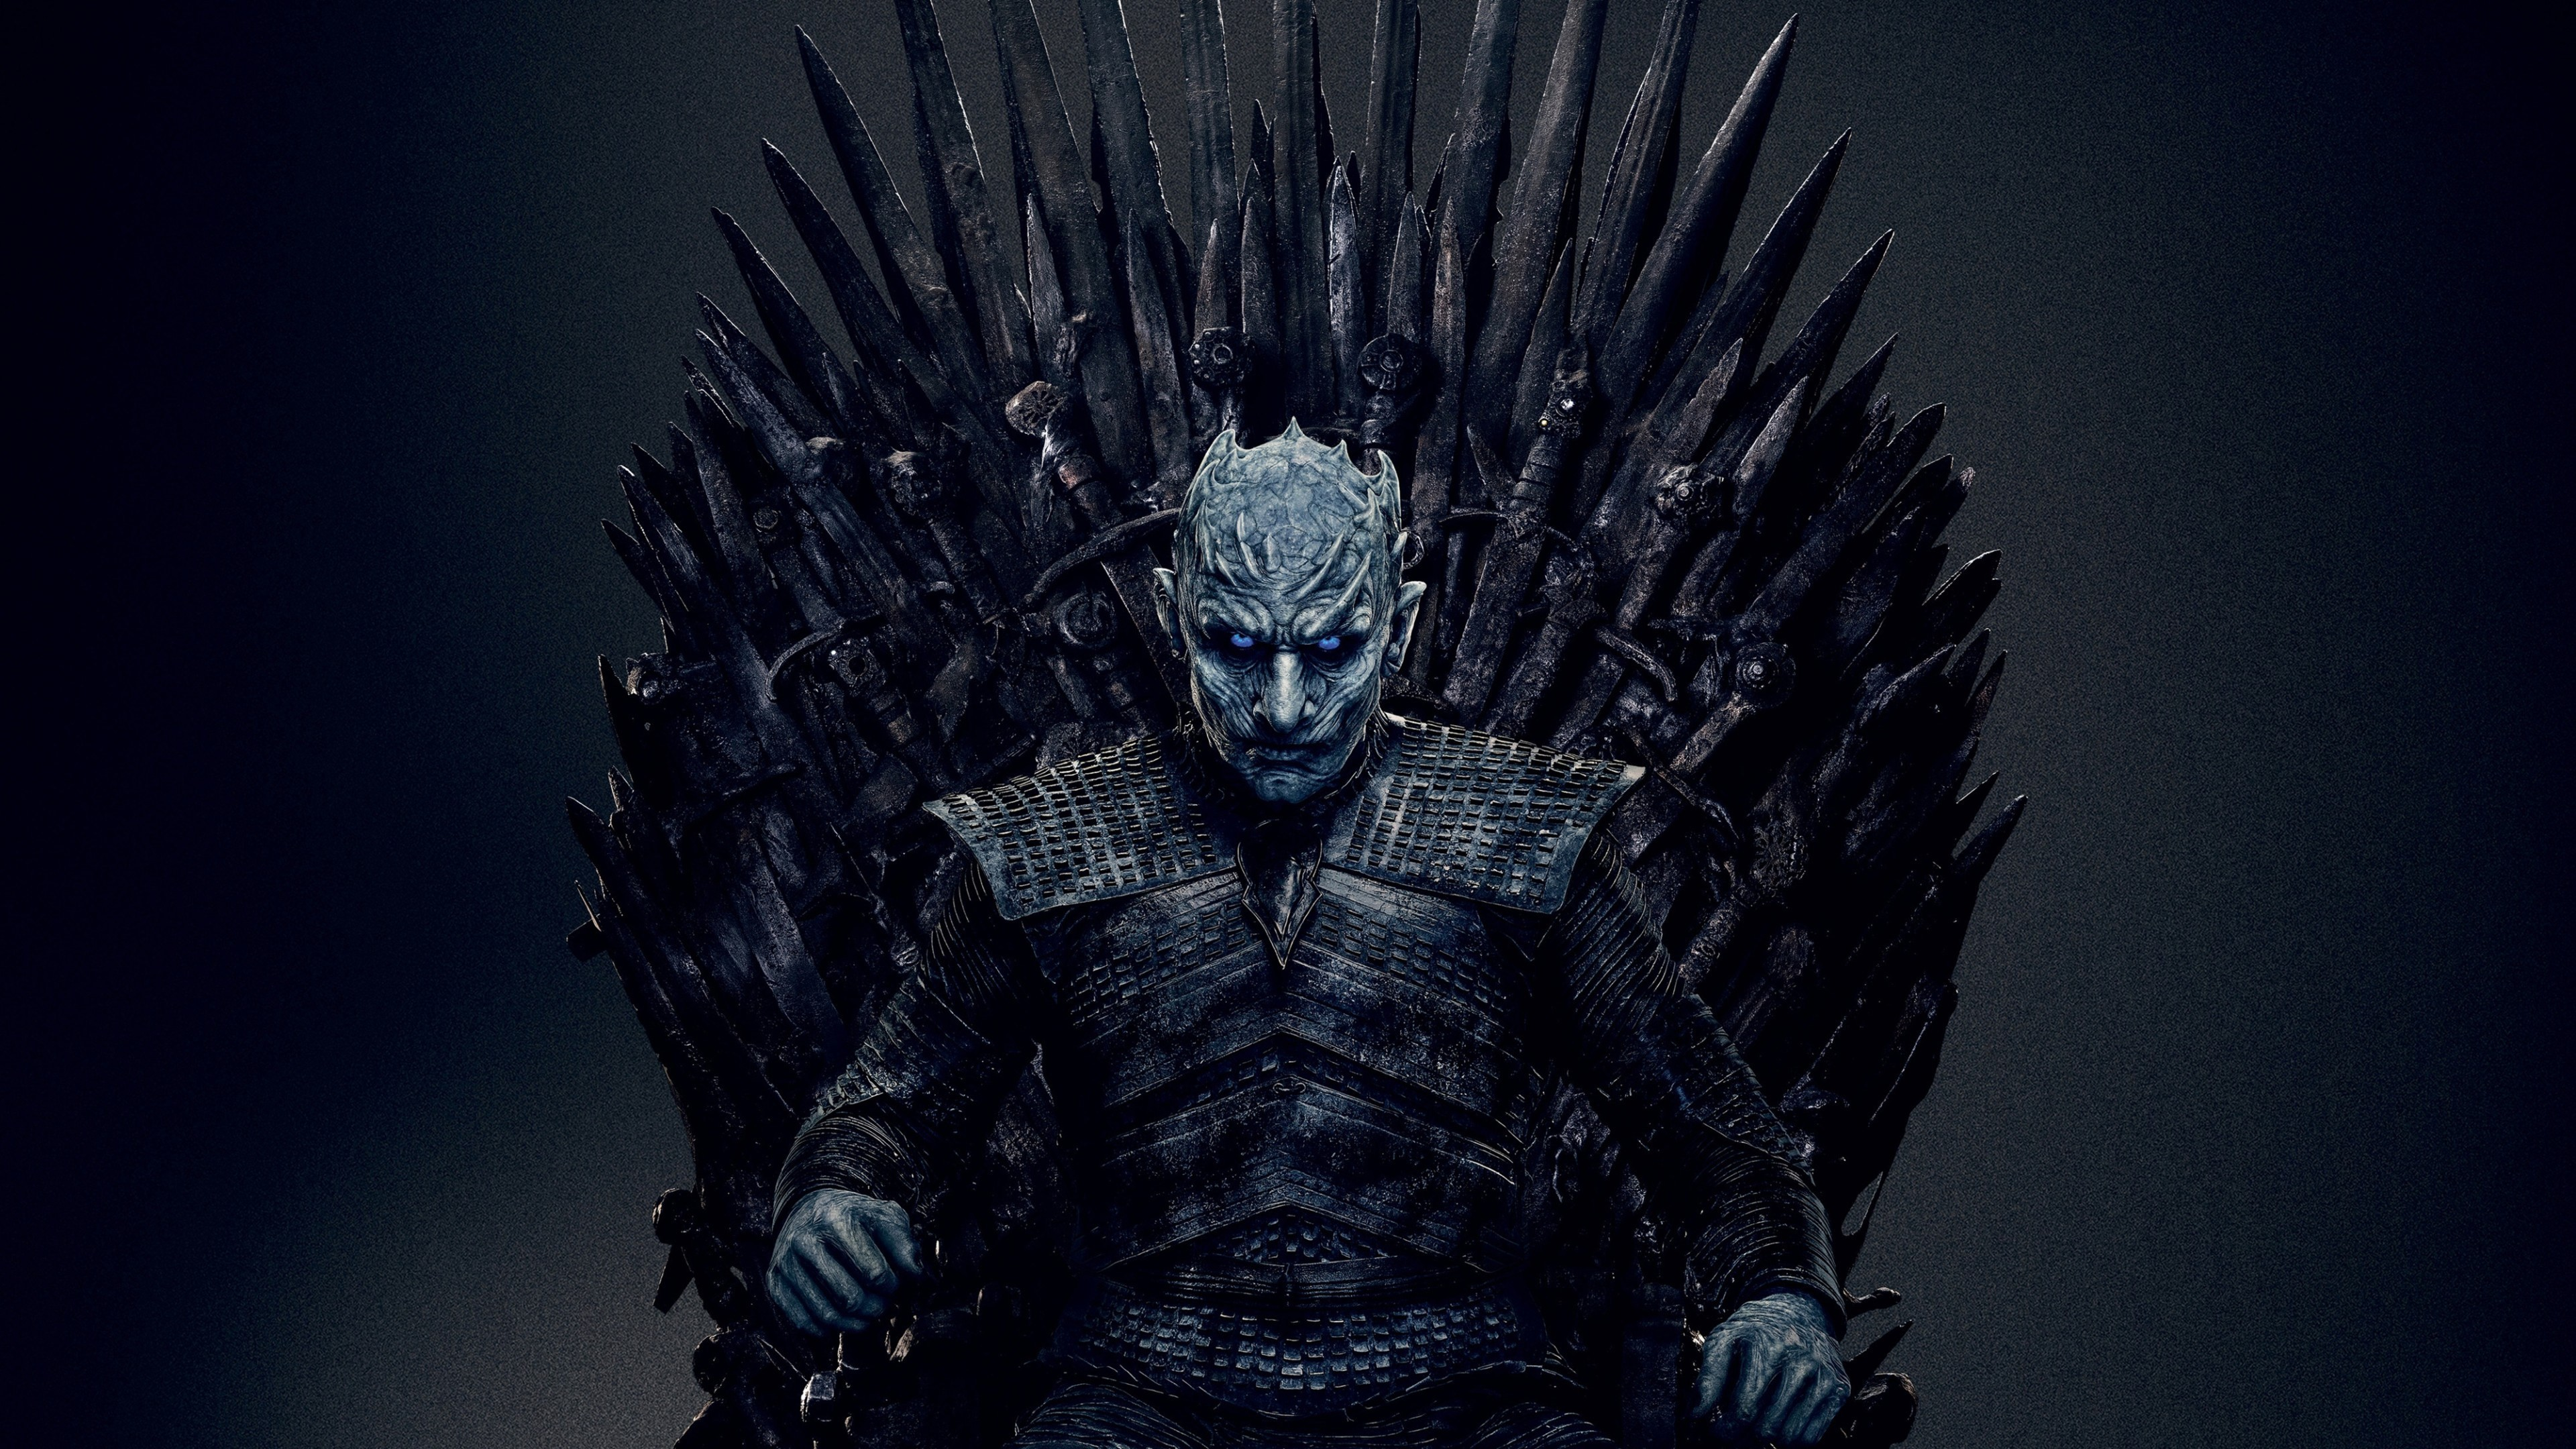 Res: 3840x2160, Night King In Game Of Thrones Season 8 4k Wallpapers Hd